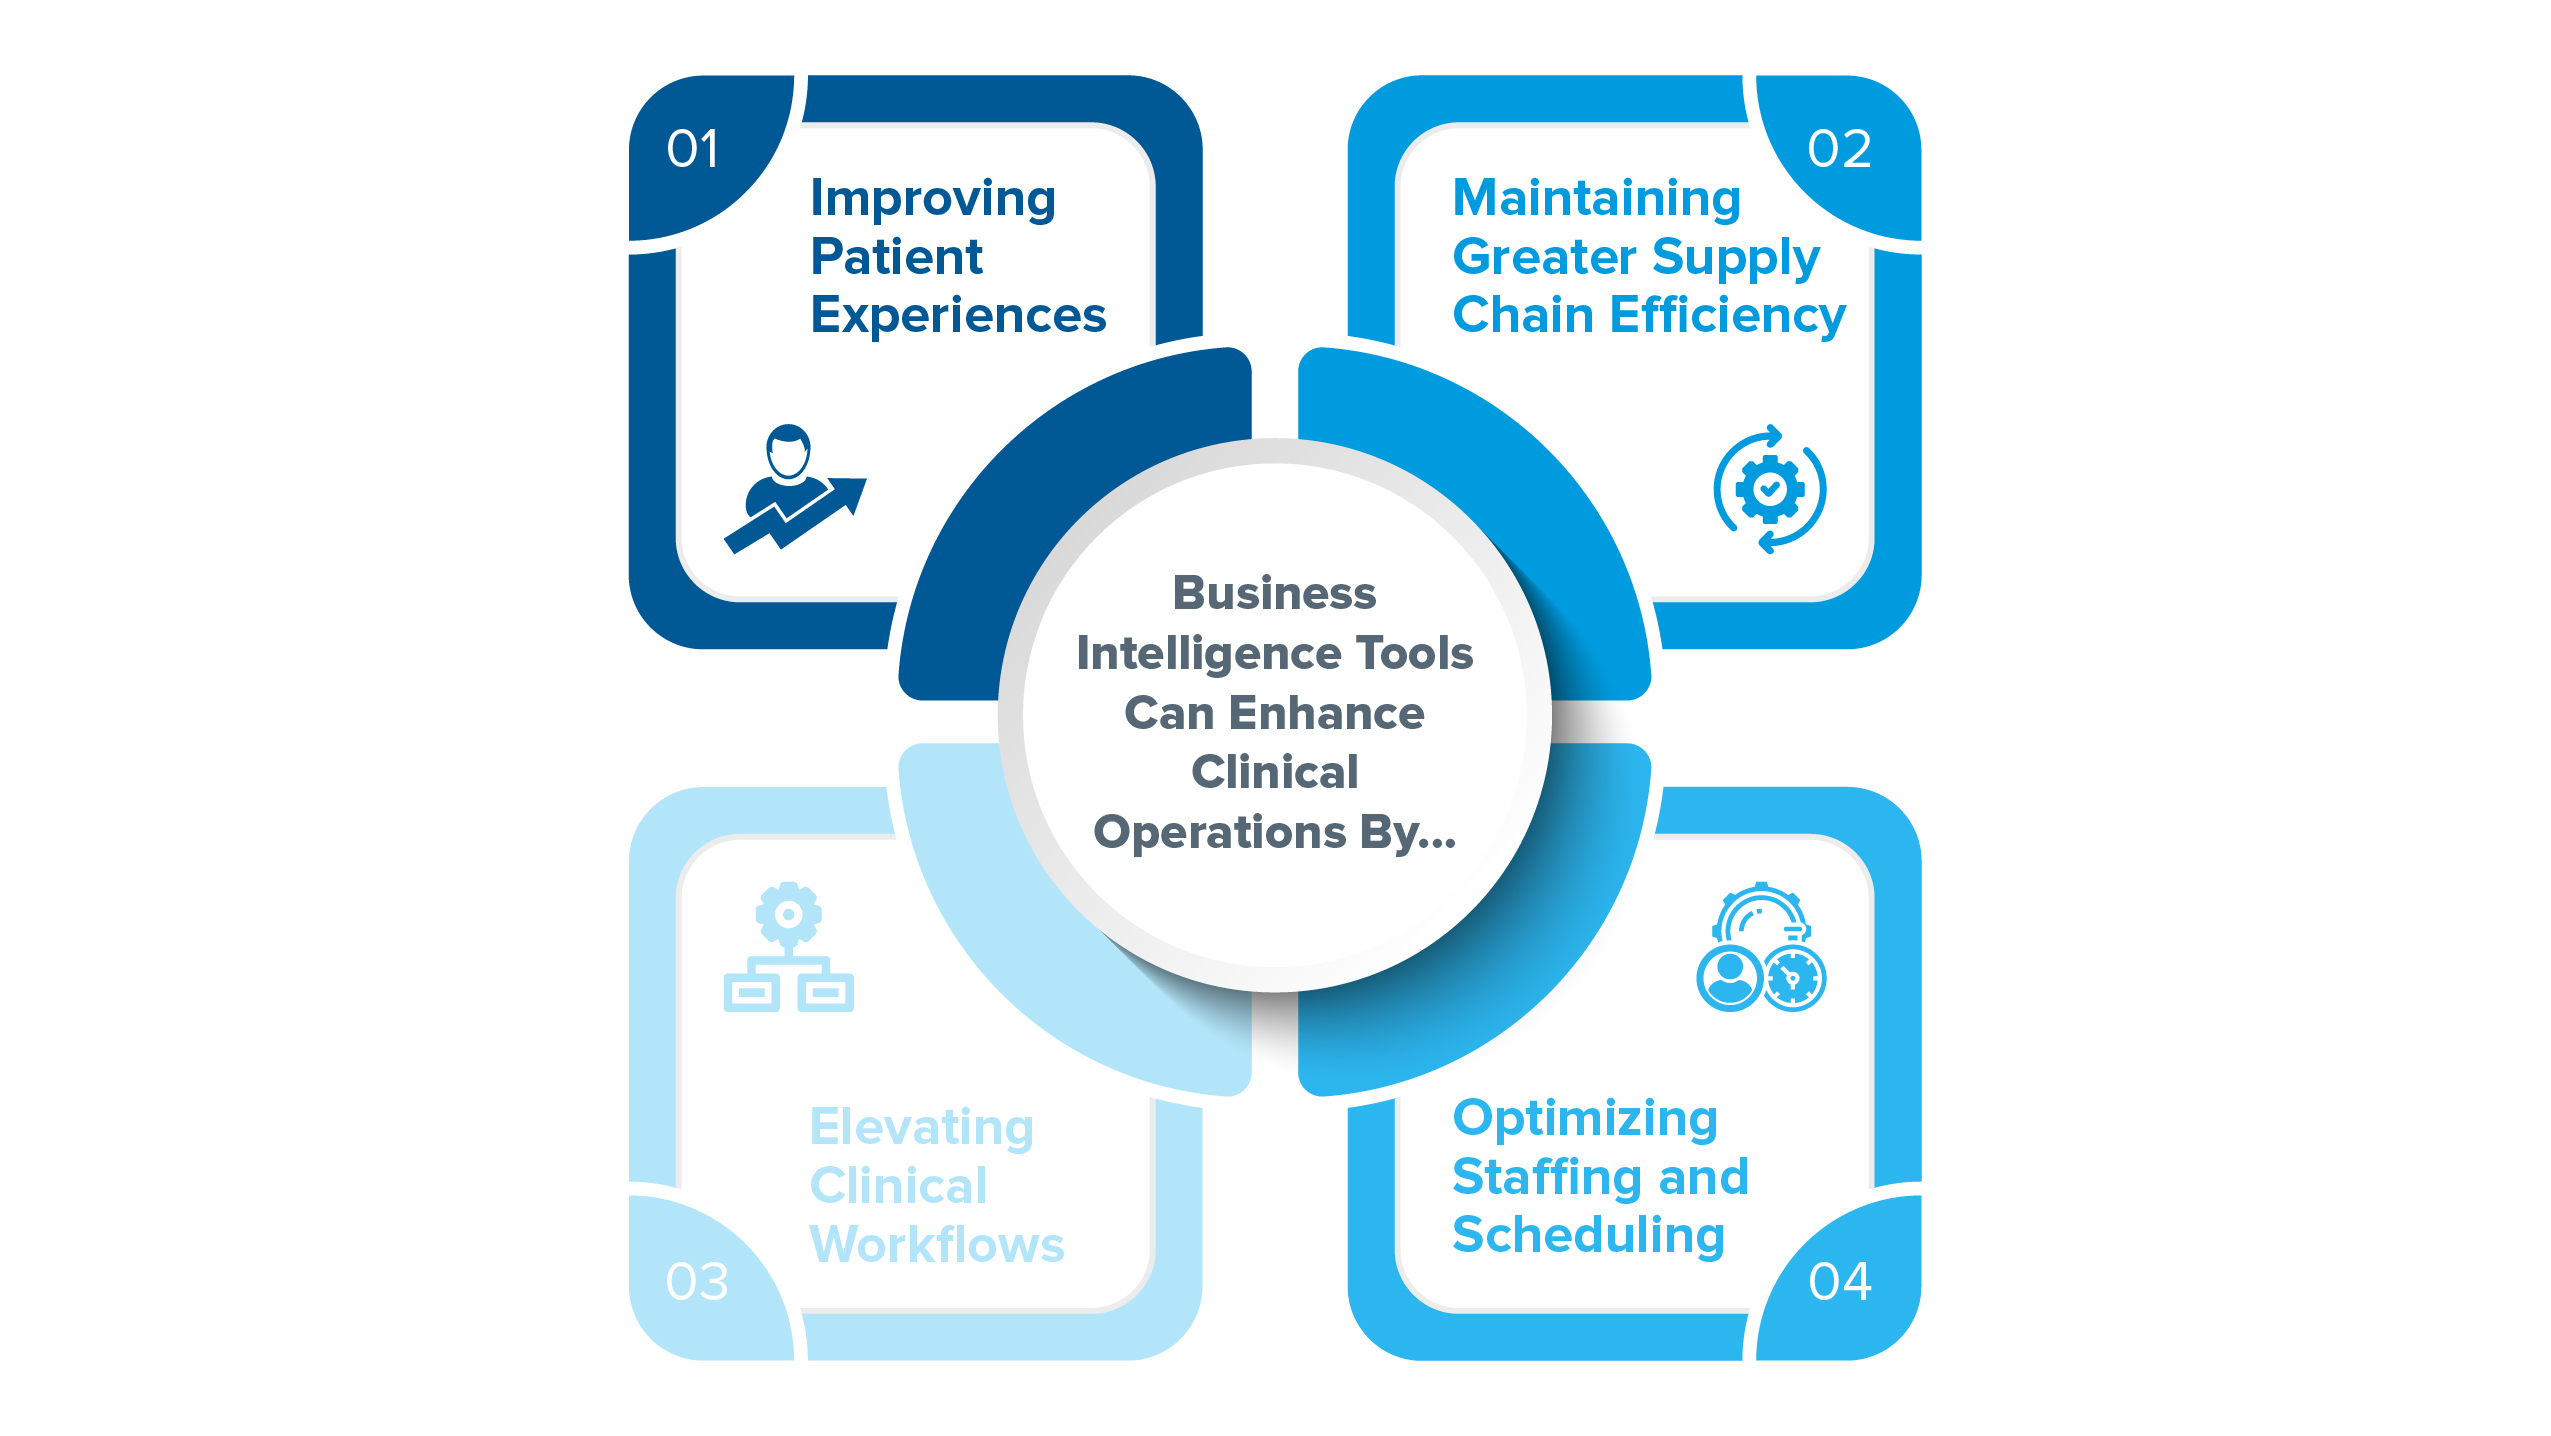 business intelligence can help clinical performances